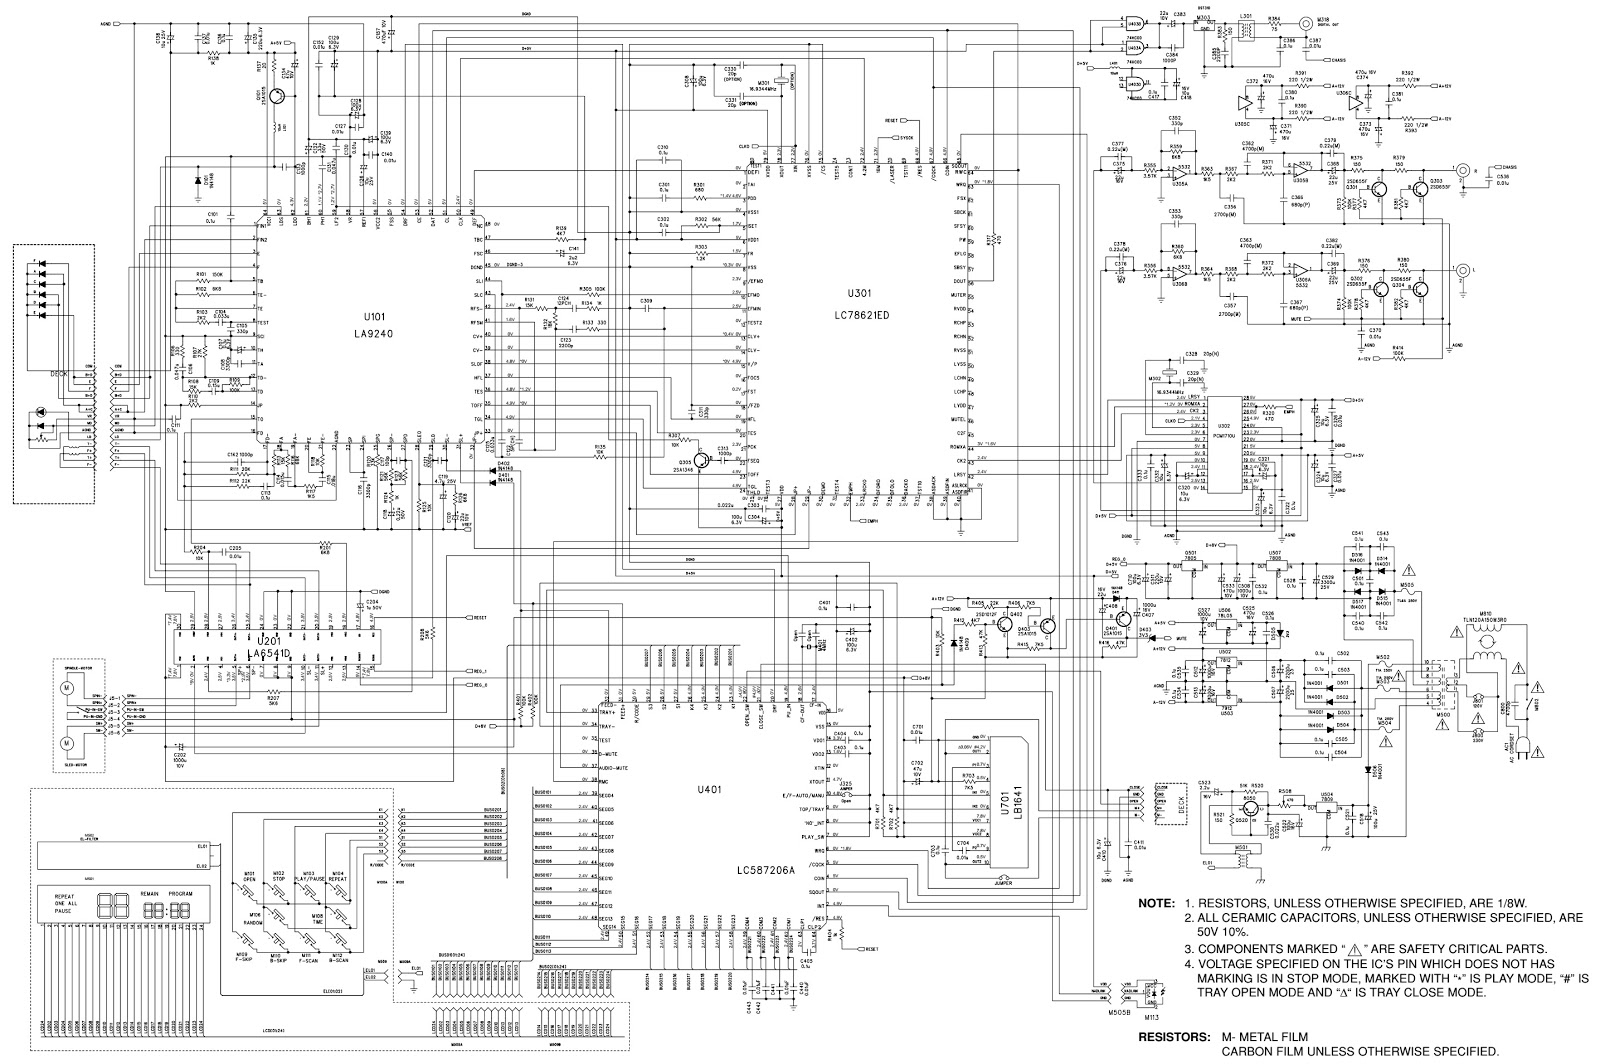 nad c521 compact disc player  u2013 schematic  u2013 mechanism exploded view